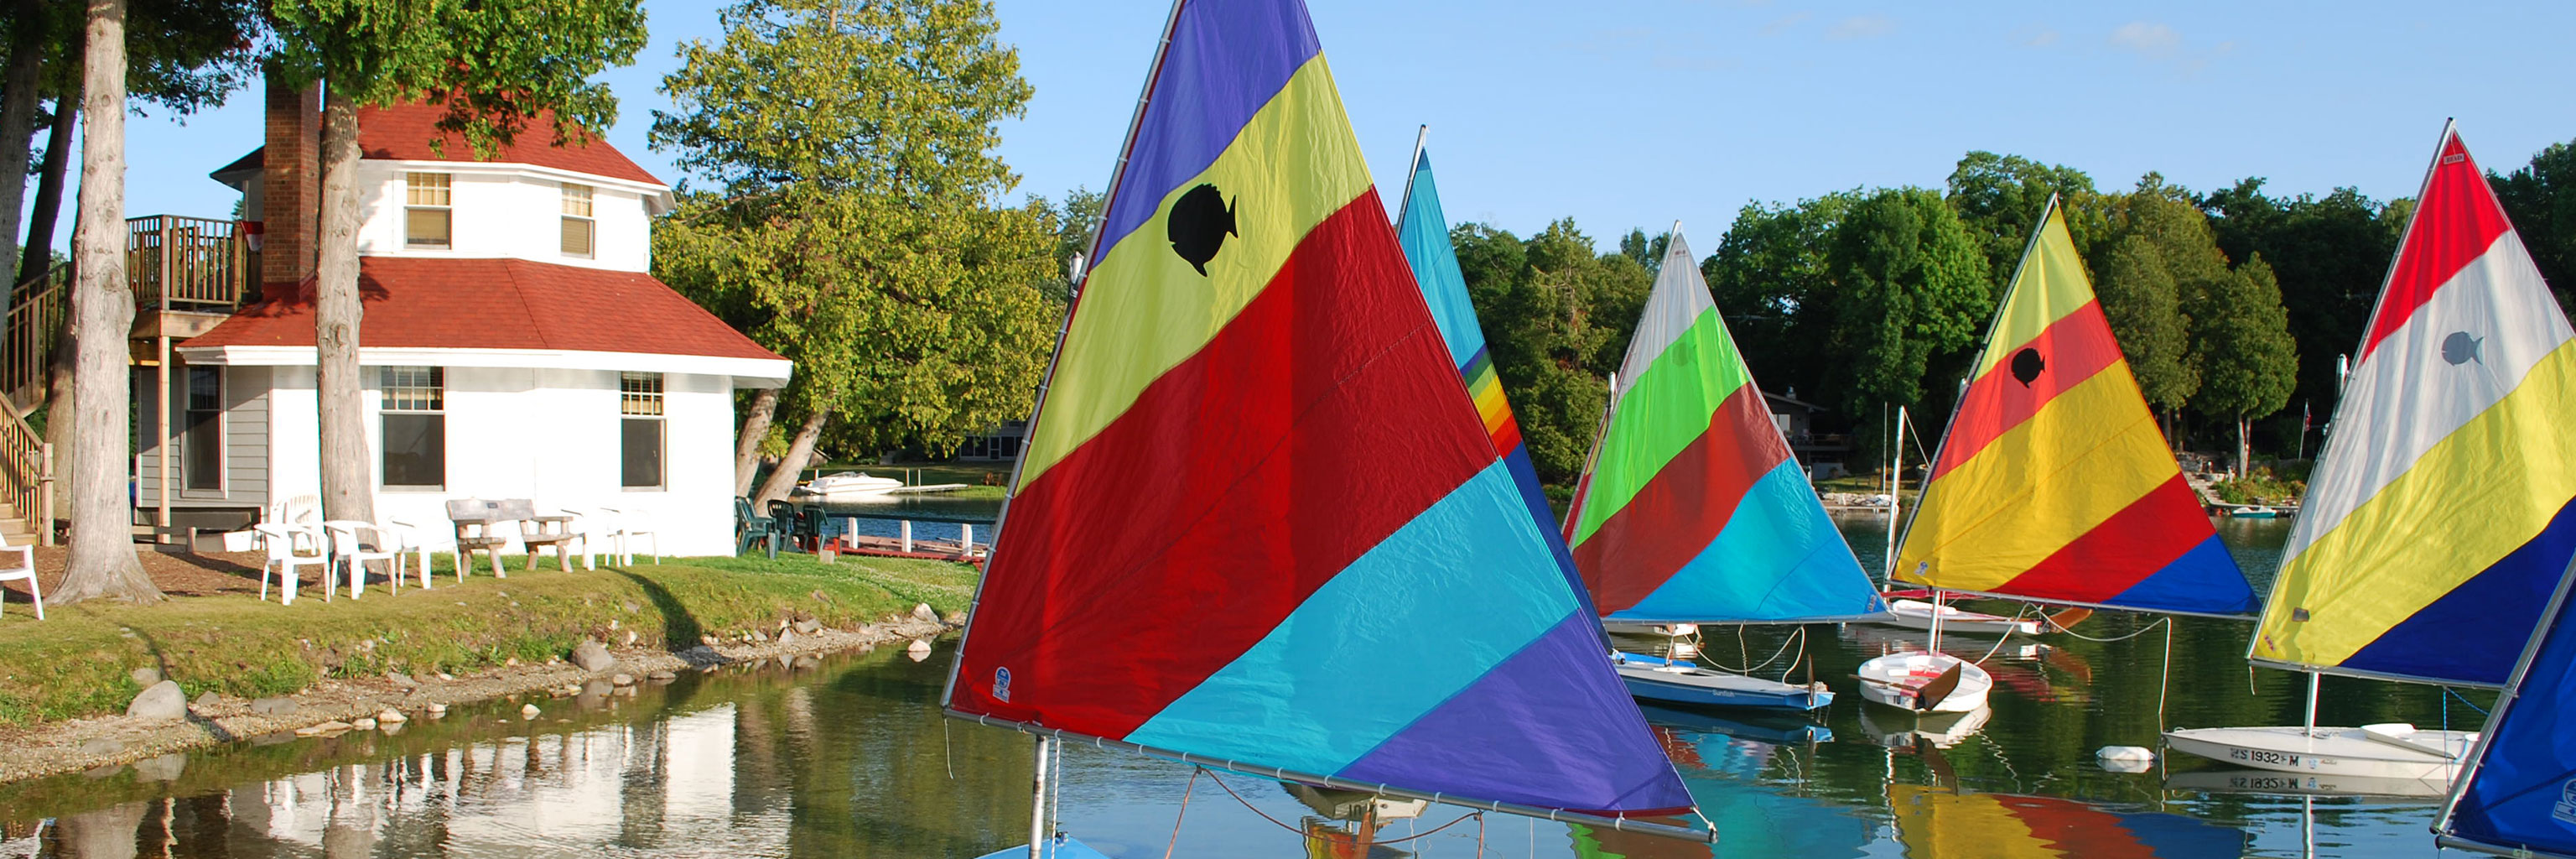 lake view with sailboats